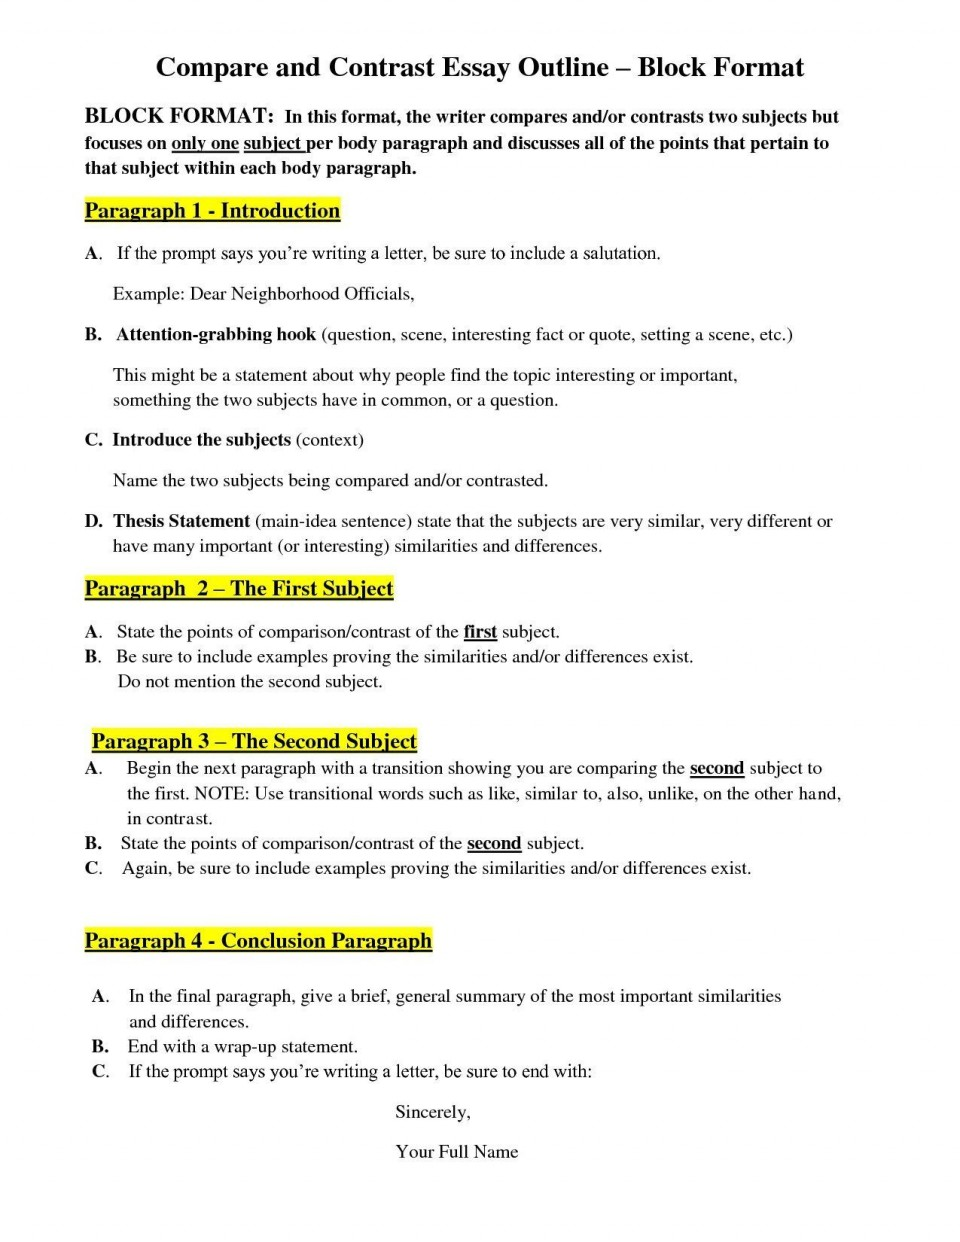 007 Compare And Contrast Essay Frightening Topics For College Students Rubric 4th Grade Ideas 7th 960